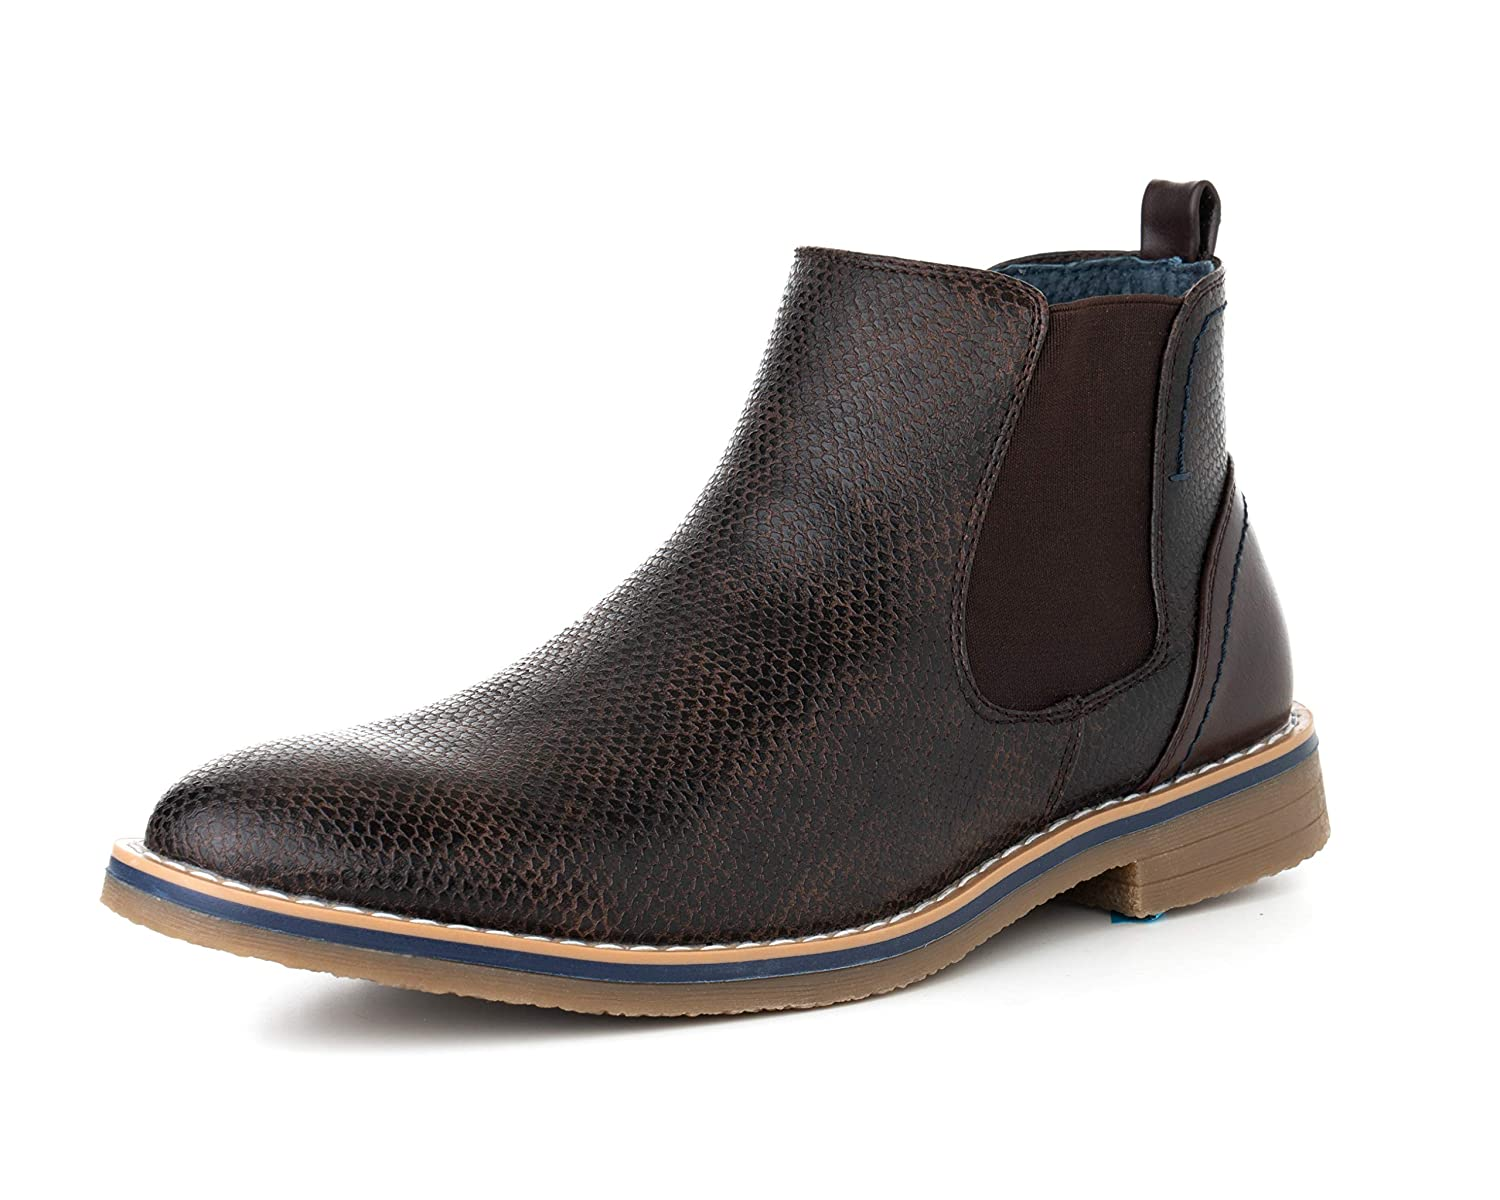 alpine swiss Men s Nash Chelsea Boots Snakeskin Ankle Boot Genuine Leather  Lined By Alpine Swiss 155b4688922e